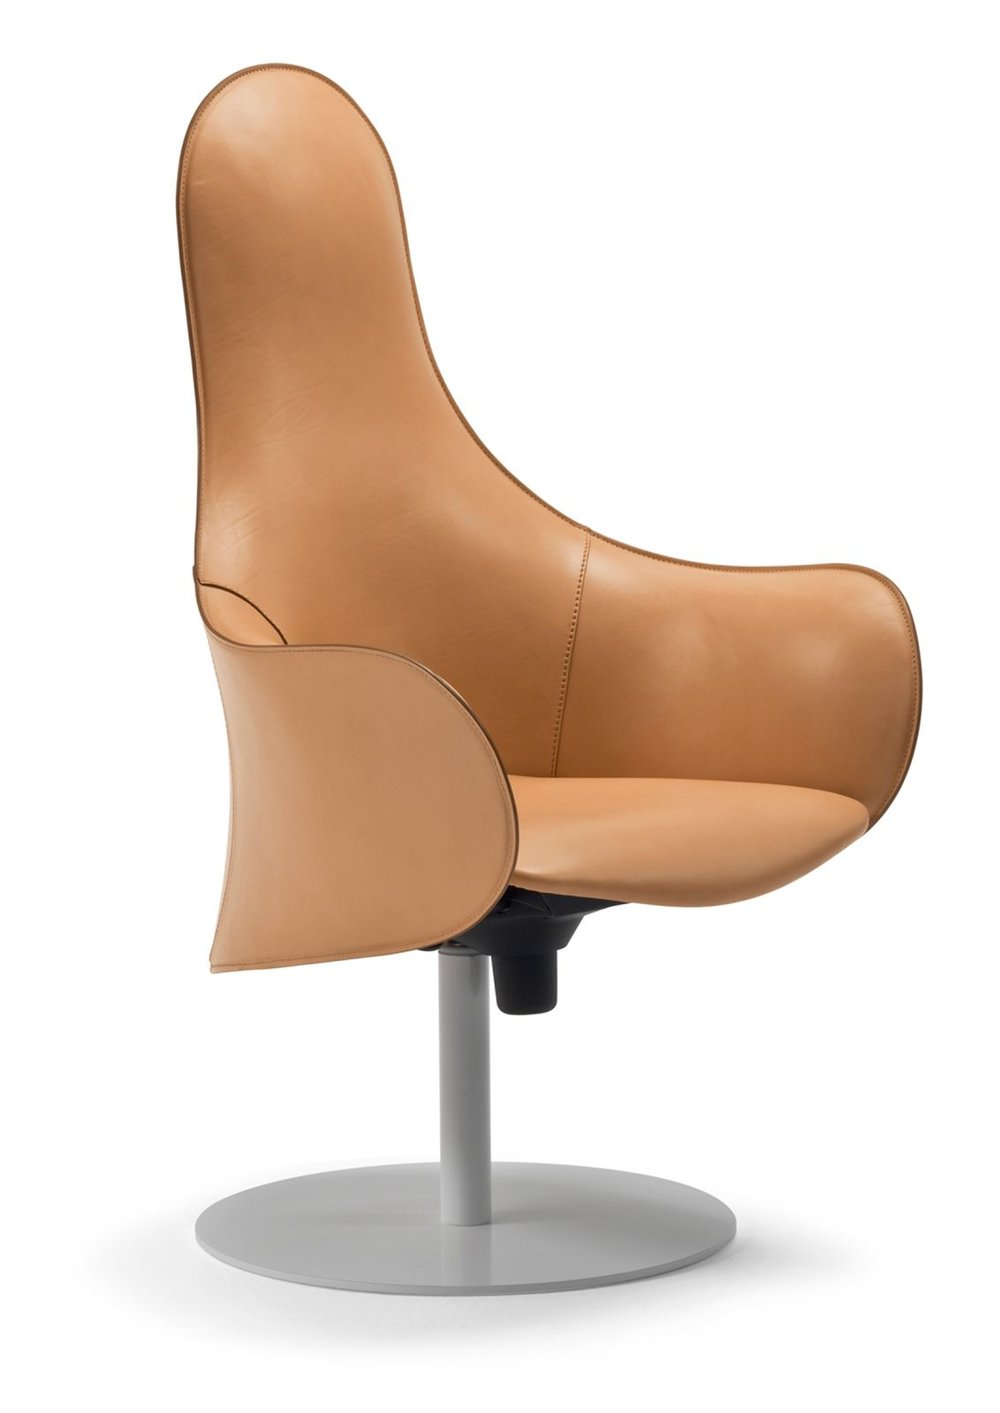 MOF 30 Modern Office Chair